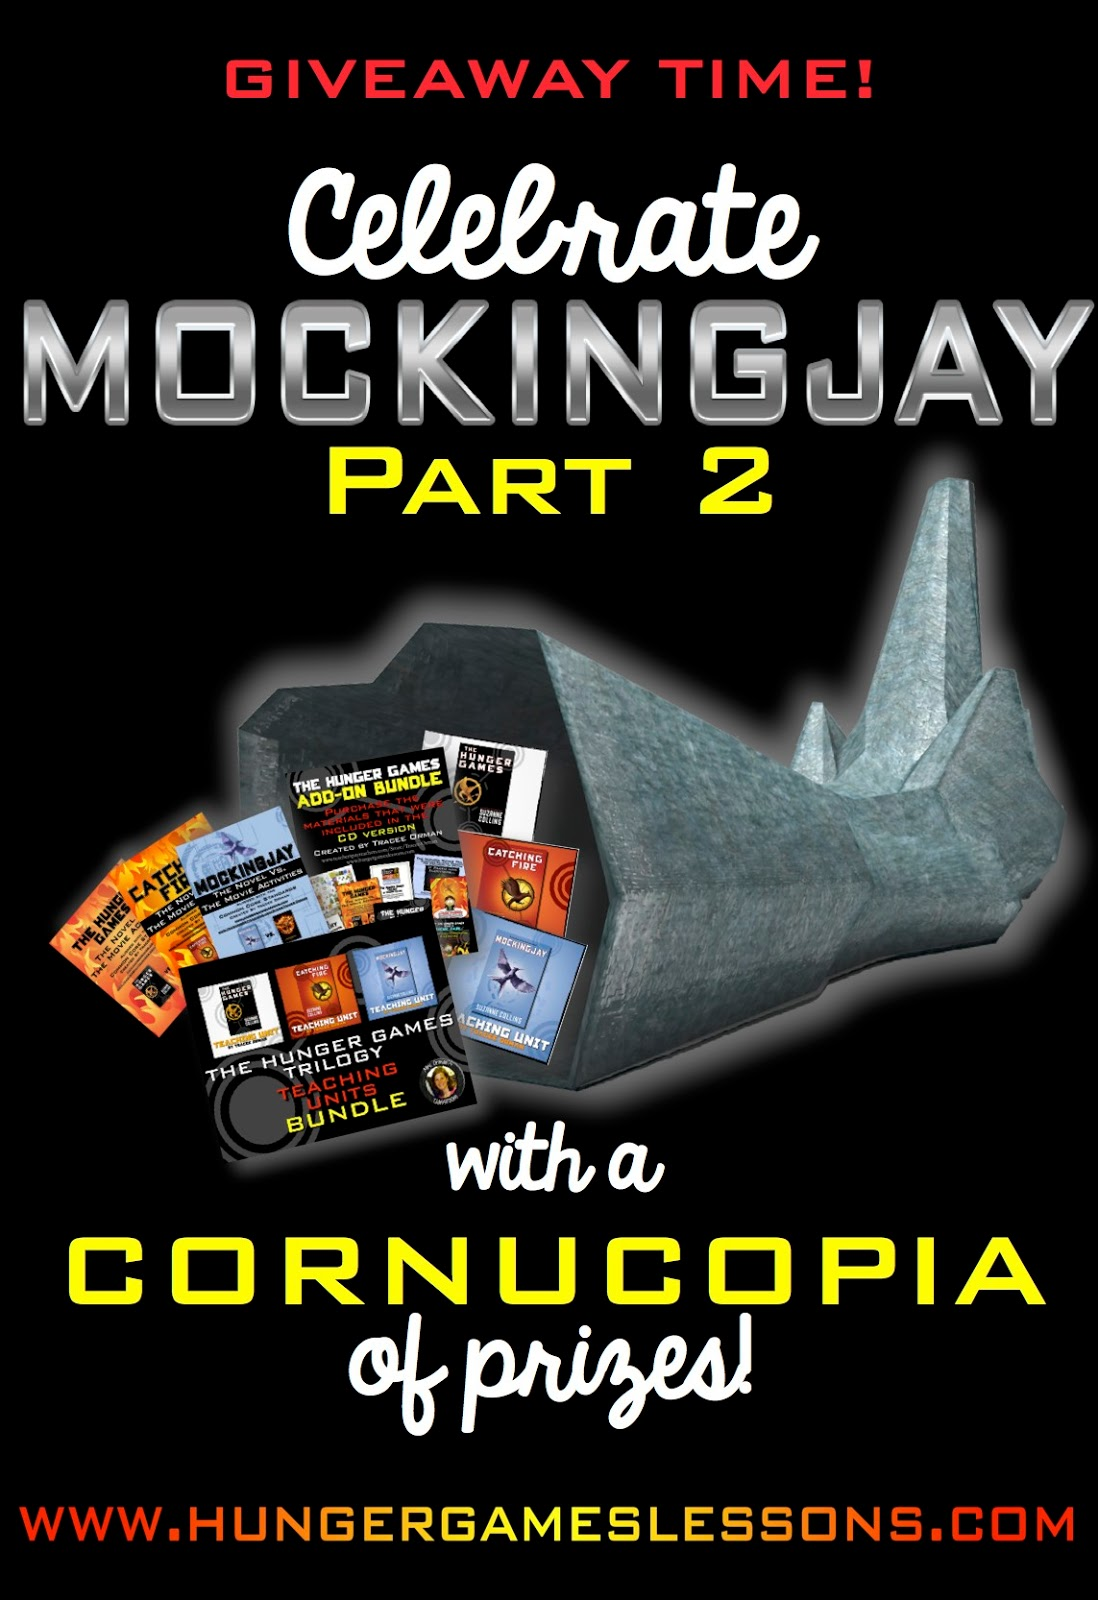 Hunger Games Lessons Mockingjay Part 2 Giveaway For Teachers